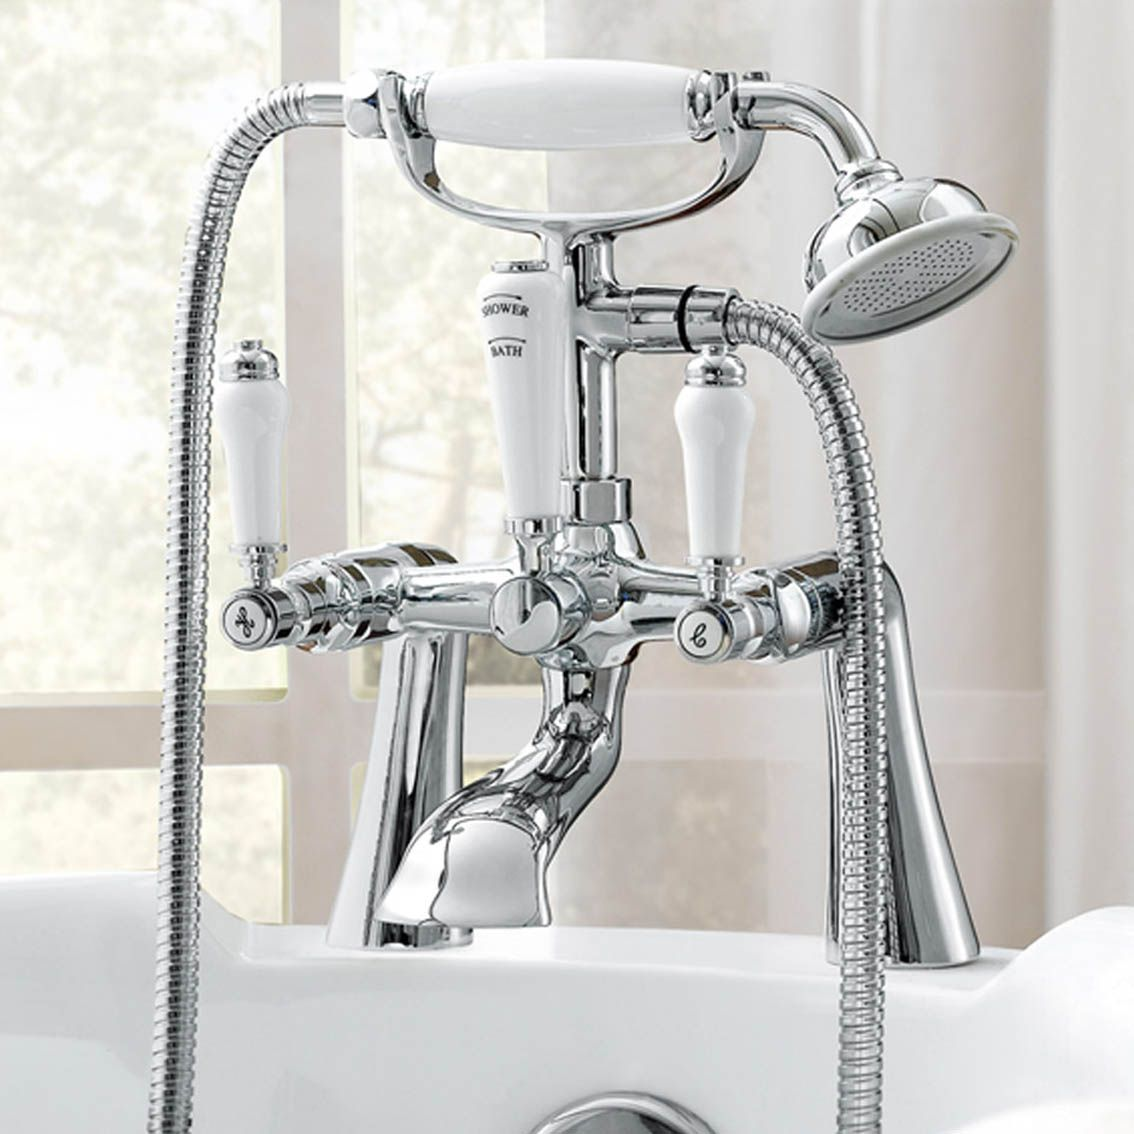 55248302fc Regal Chrome Traditional Bath Mixer Lever Tap with Hand Held Shower